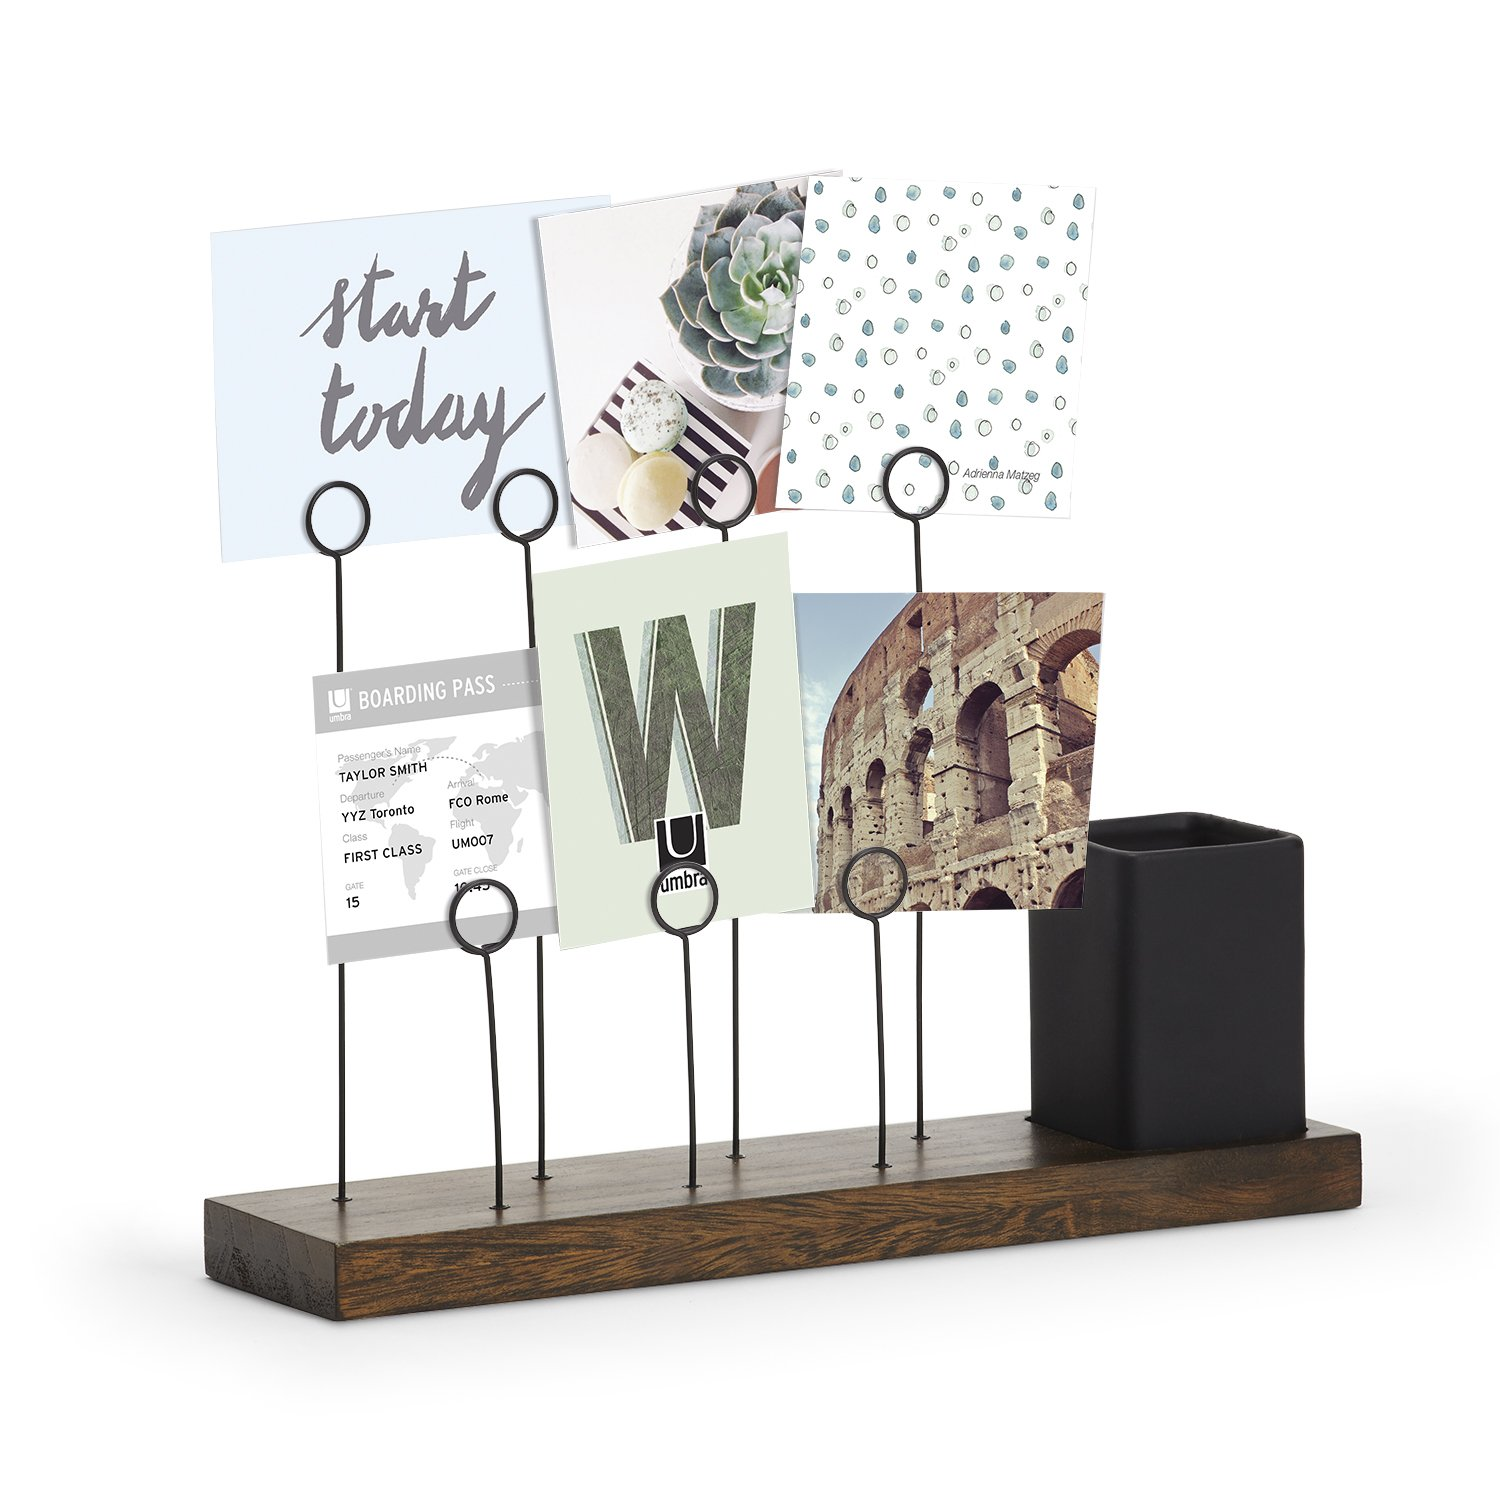 Umbra Gala, Multi Built in Planter or Pen Holder for Desk, Non Picture Frame with 7 Photo Clips, Black/Walnut by Umbra